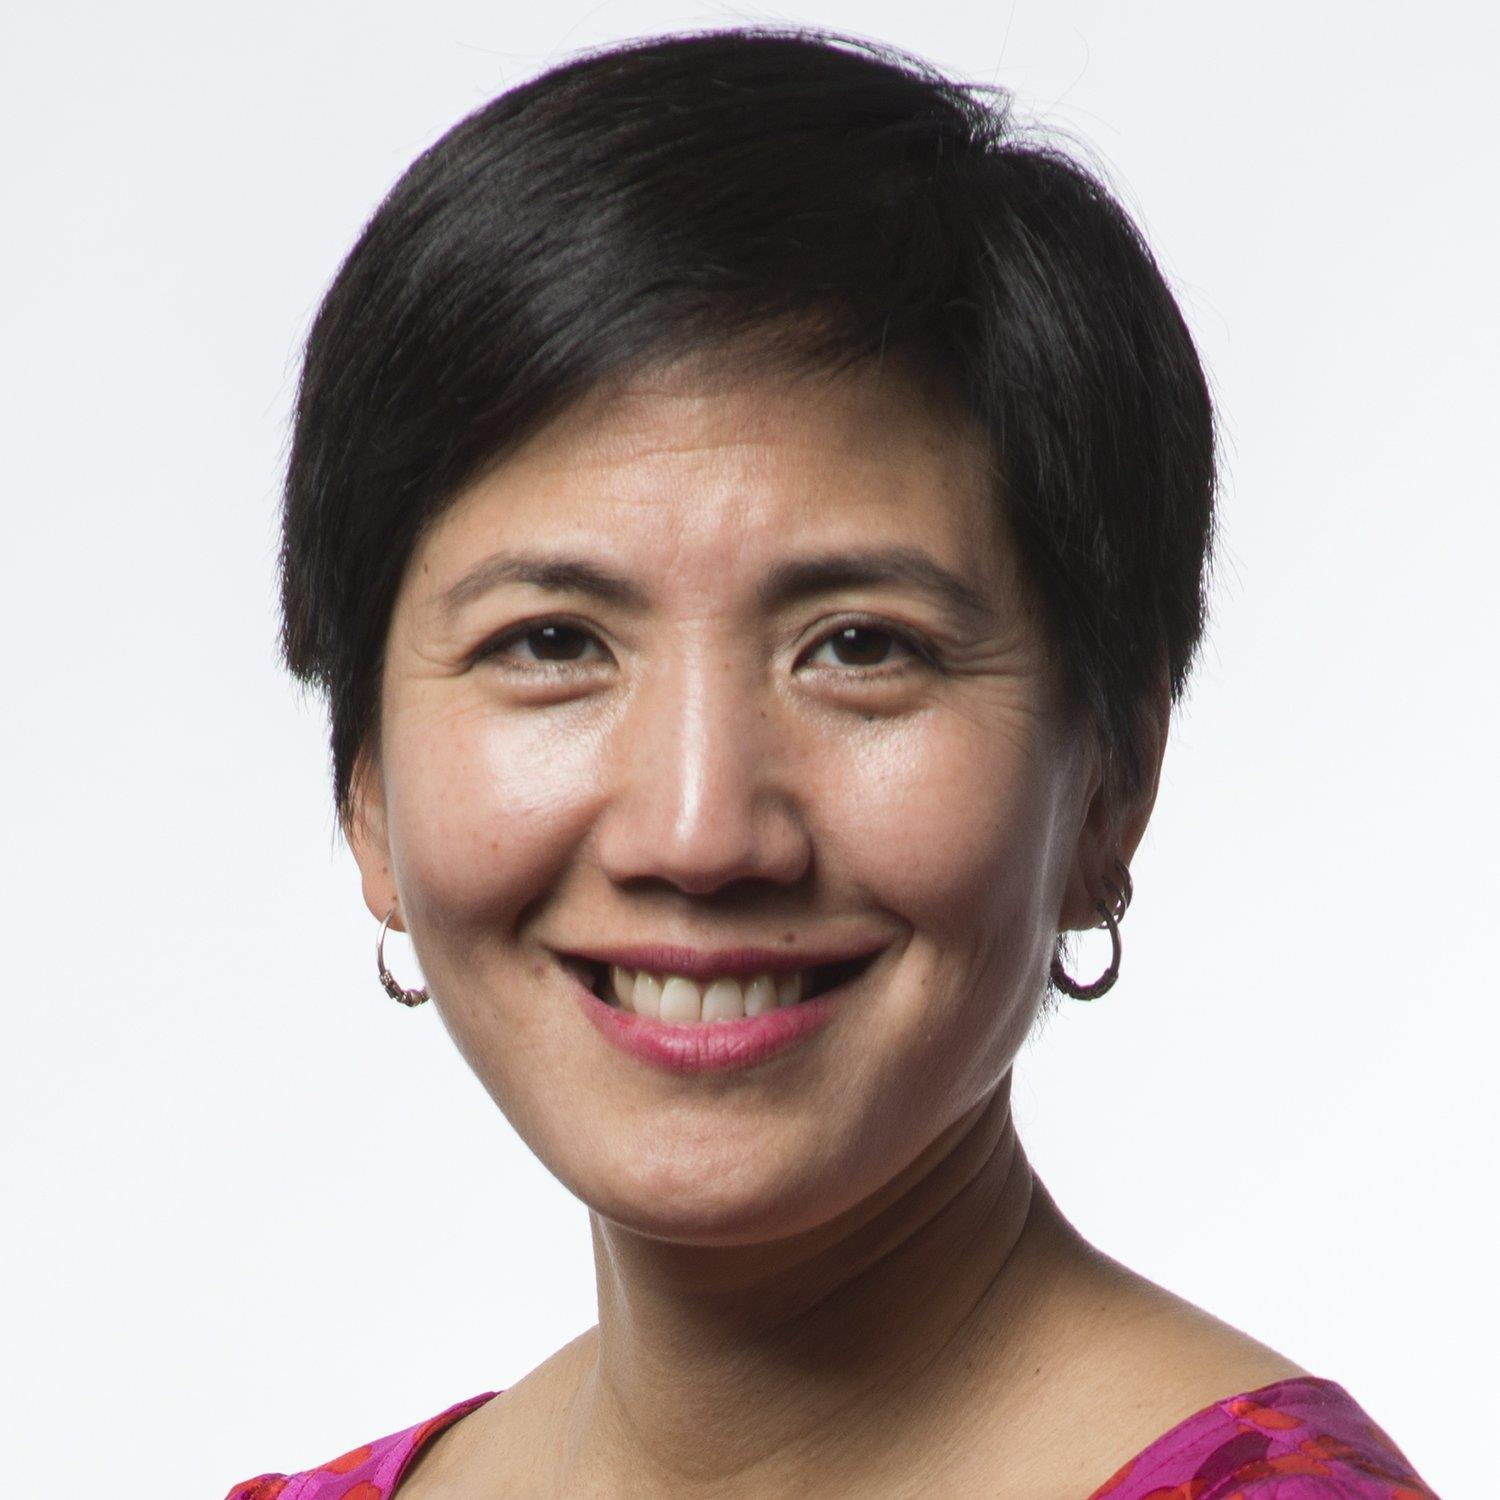 Image: Adrienne Mong of NBC News